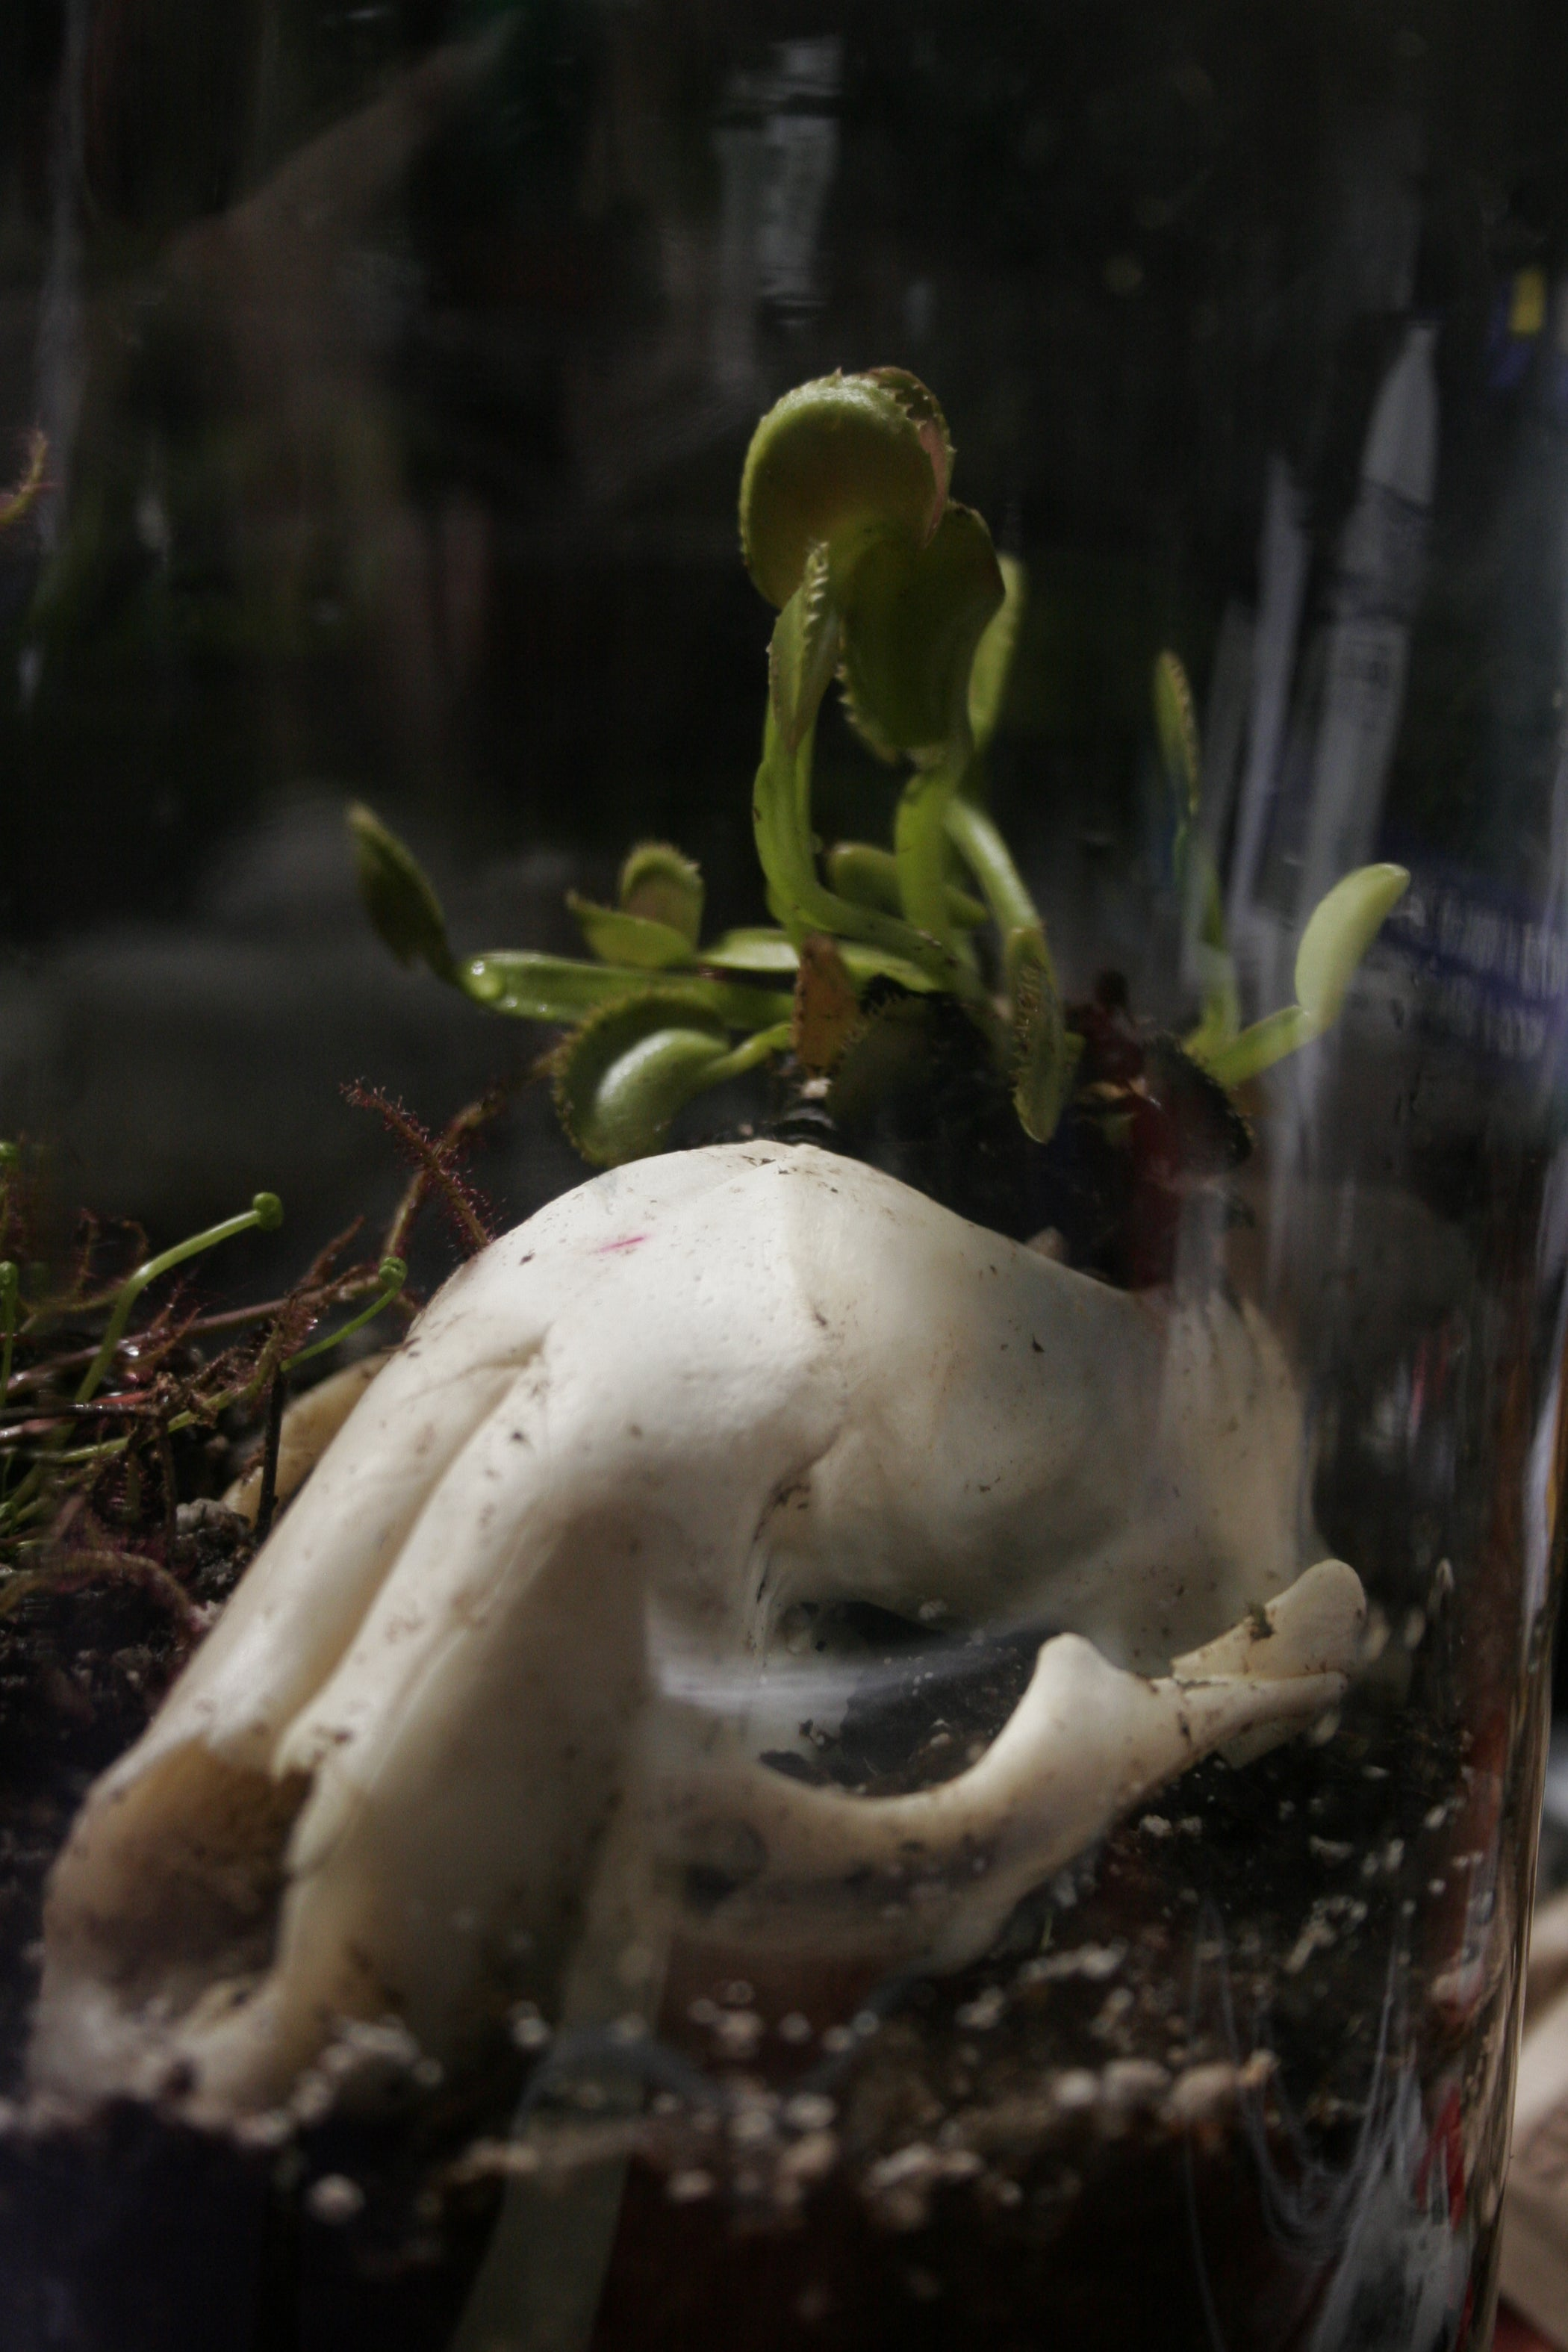 Carnivorous Plant Terrarium 7 Steps With Pictures Flytrap Robots Can Hunt And Catch Bugs For Meals